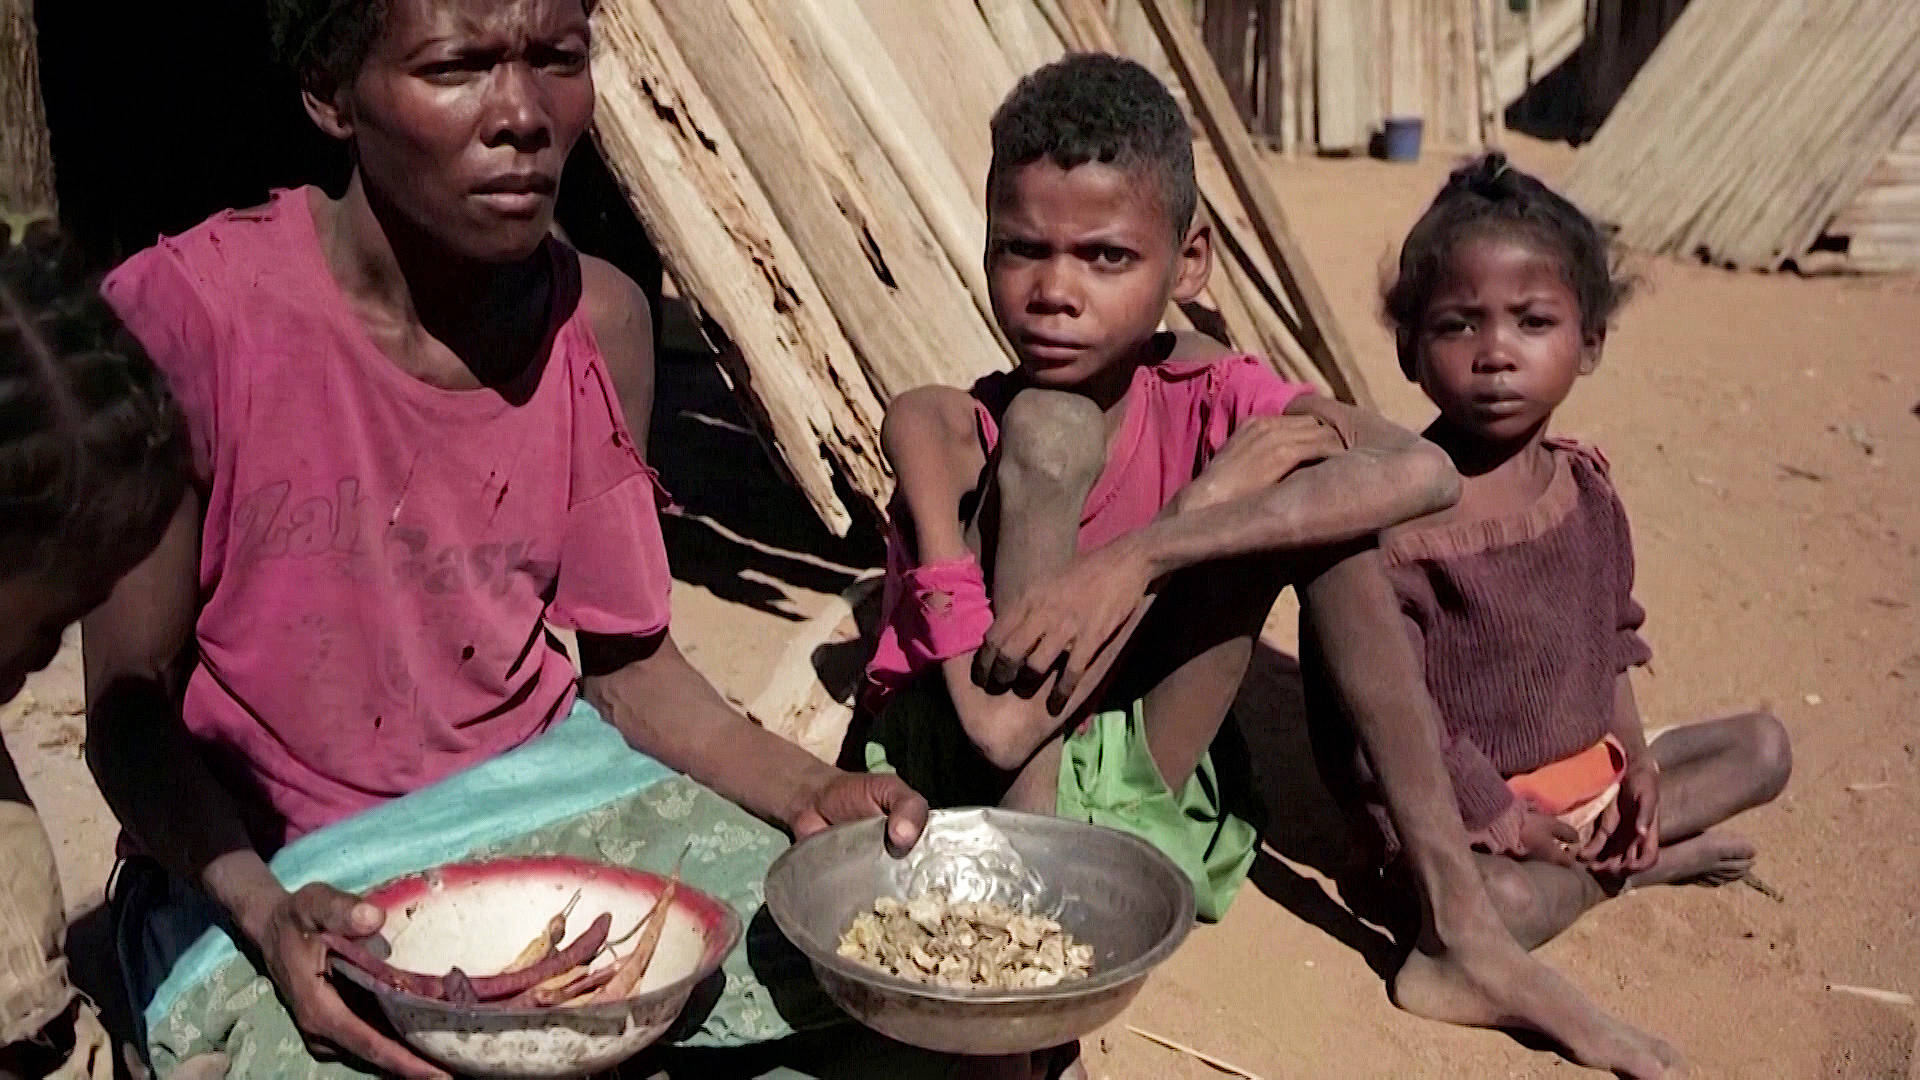 Read more about the article How the Pandemic Fueled Global Hunger: 2.5 Billion Lack Nutritious Food, 1 in 5 Children Are Stunted